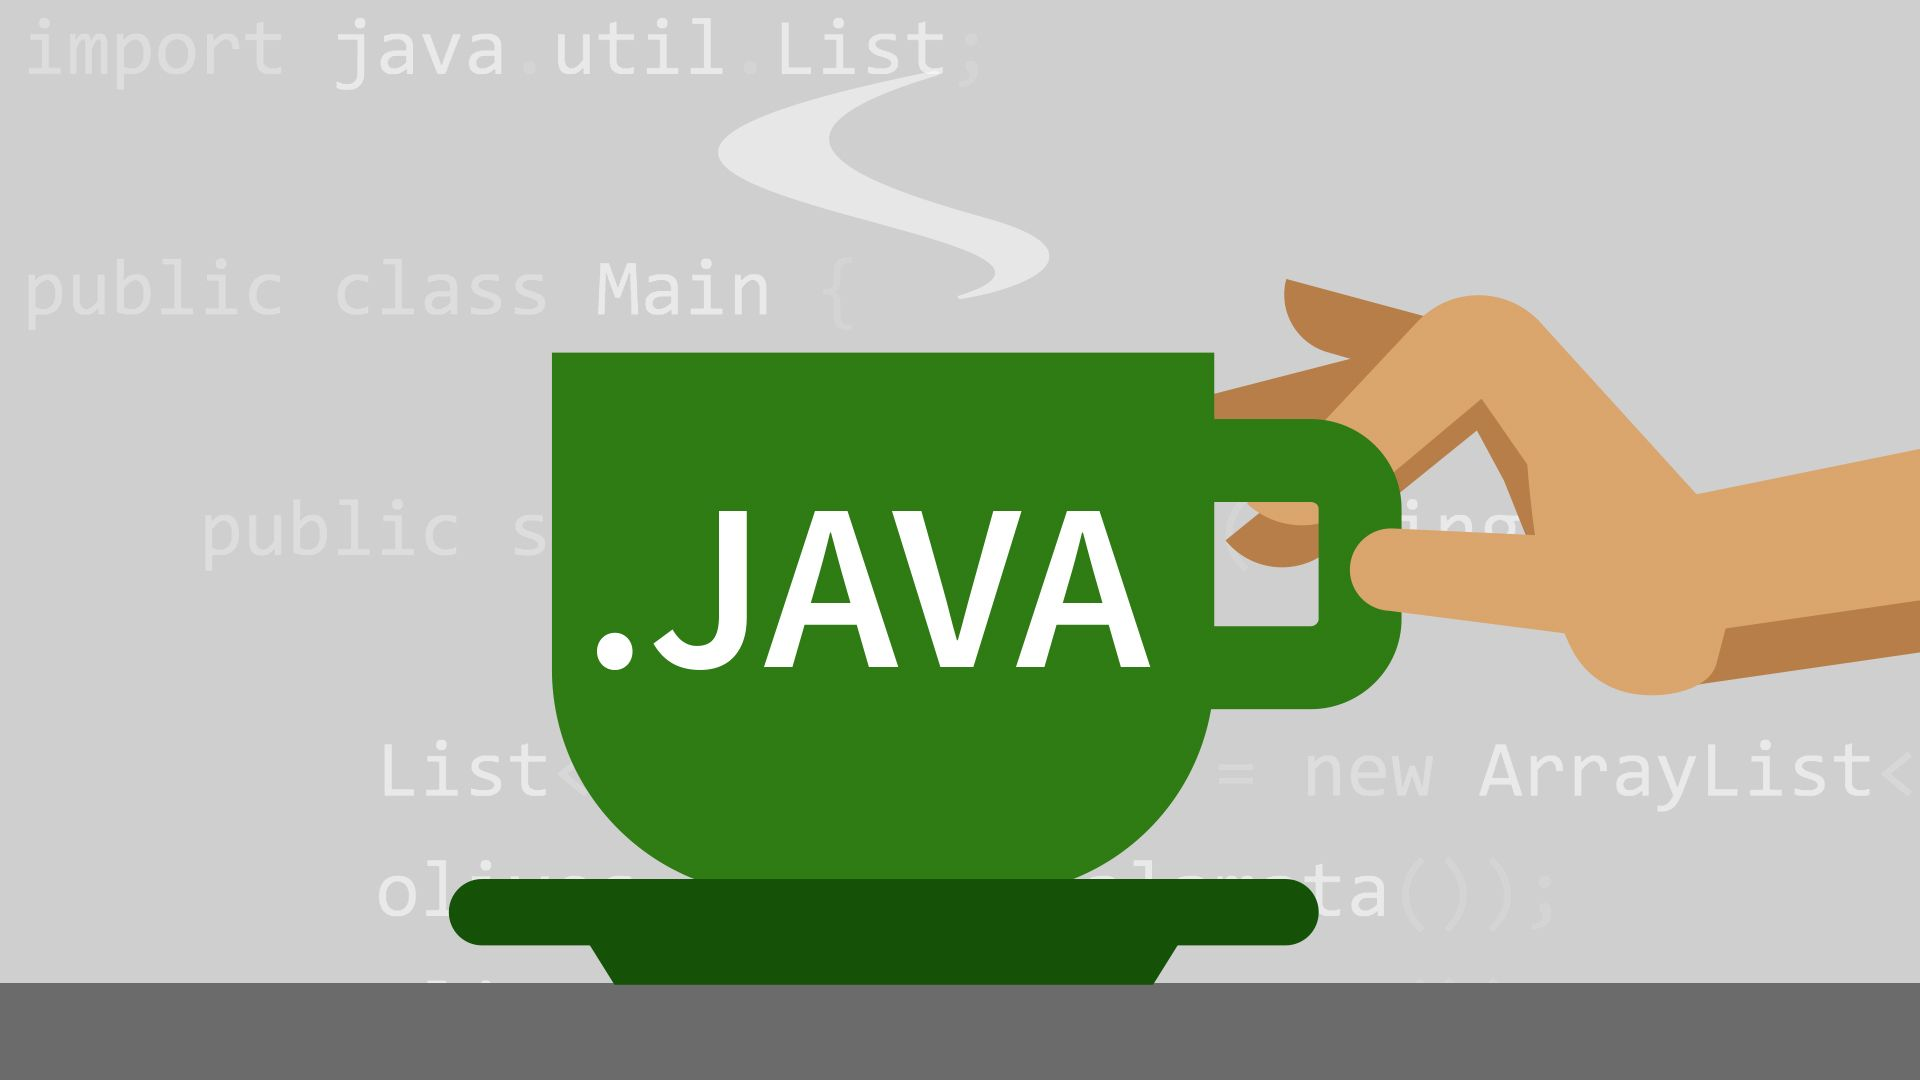 DOWNLOAD FOR FREE: Java 8 Essential Training by David Gassner from